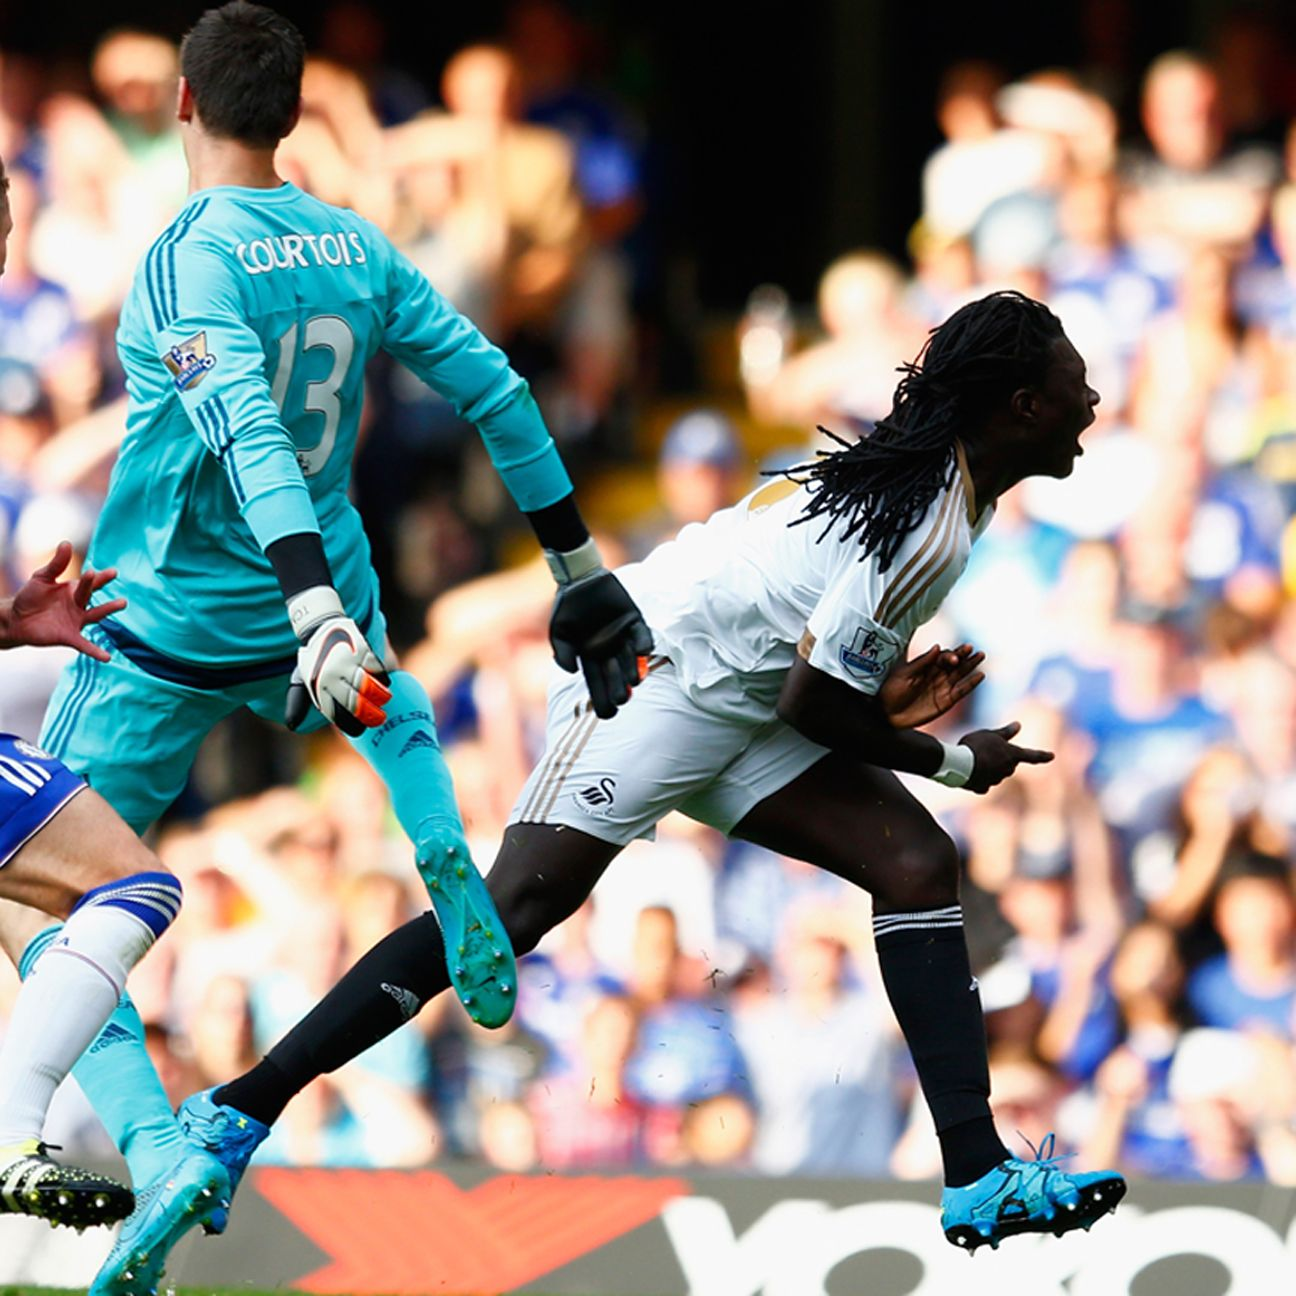 Thibaut Courtois' sending off made for a nervy second half at Stamford Bridge.